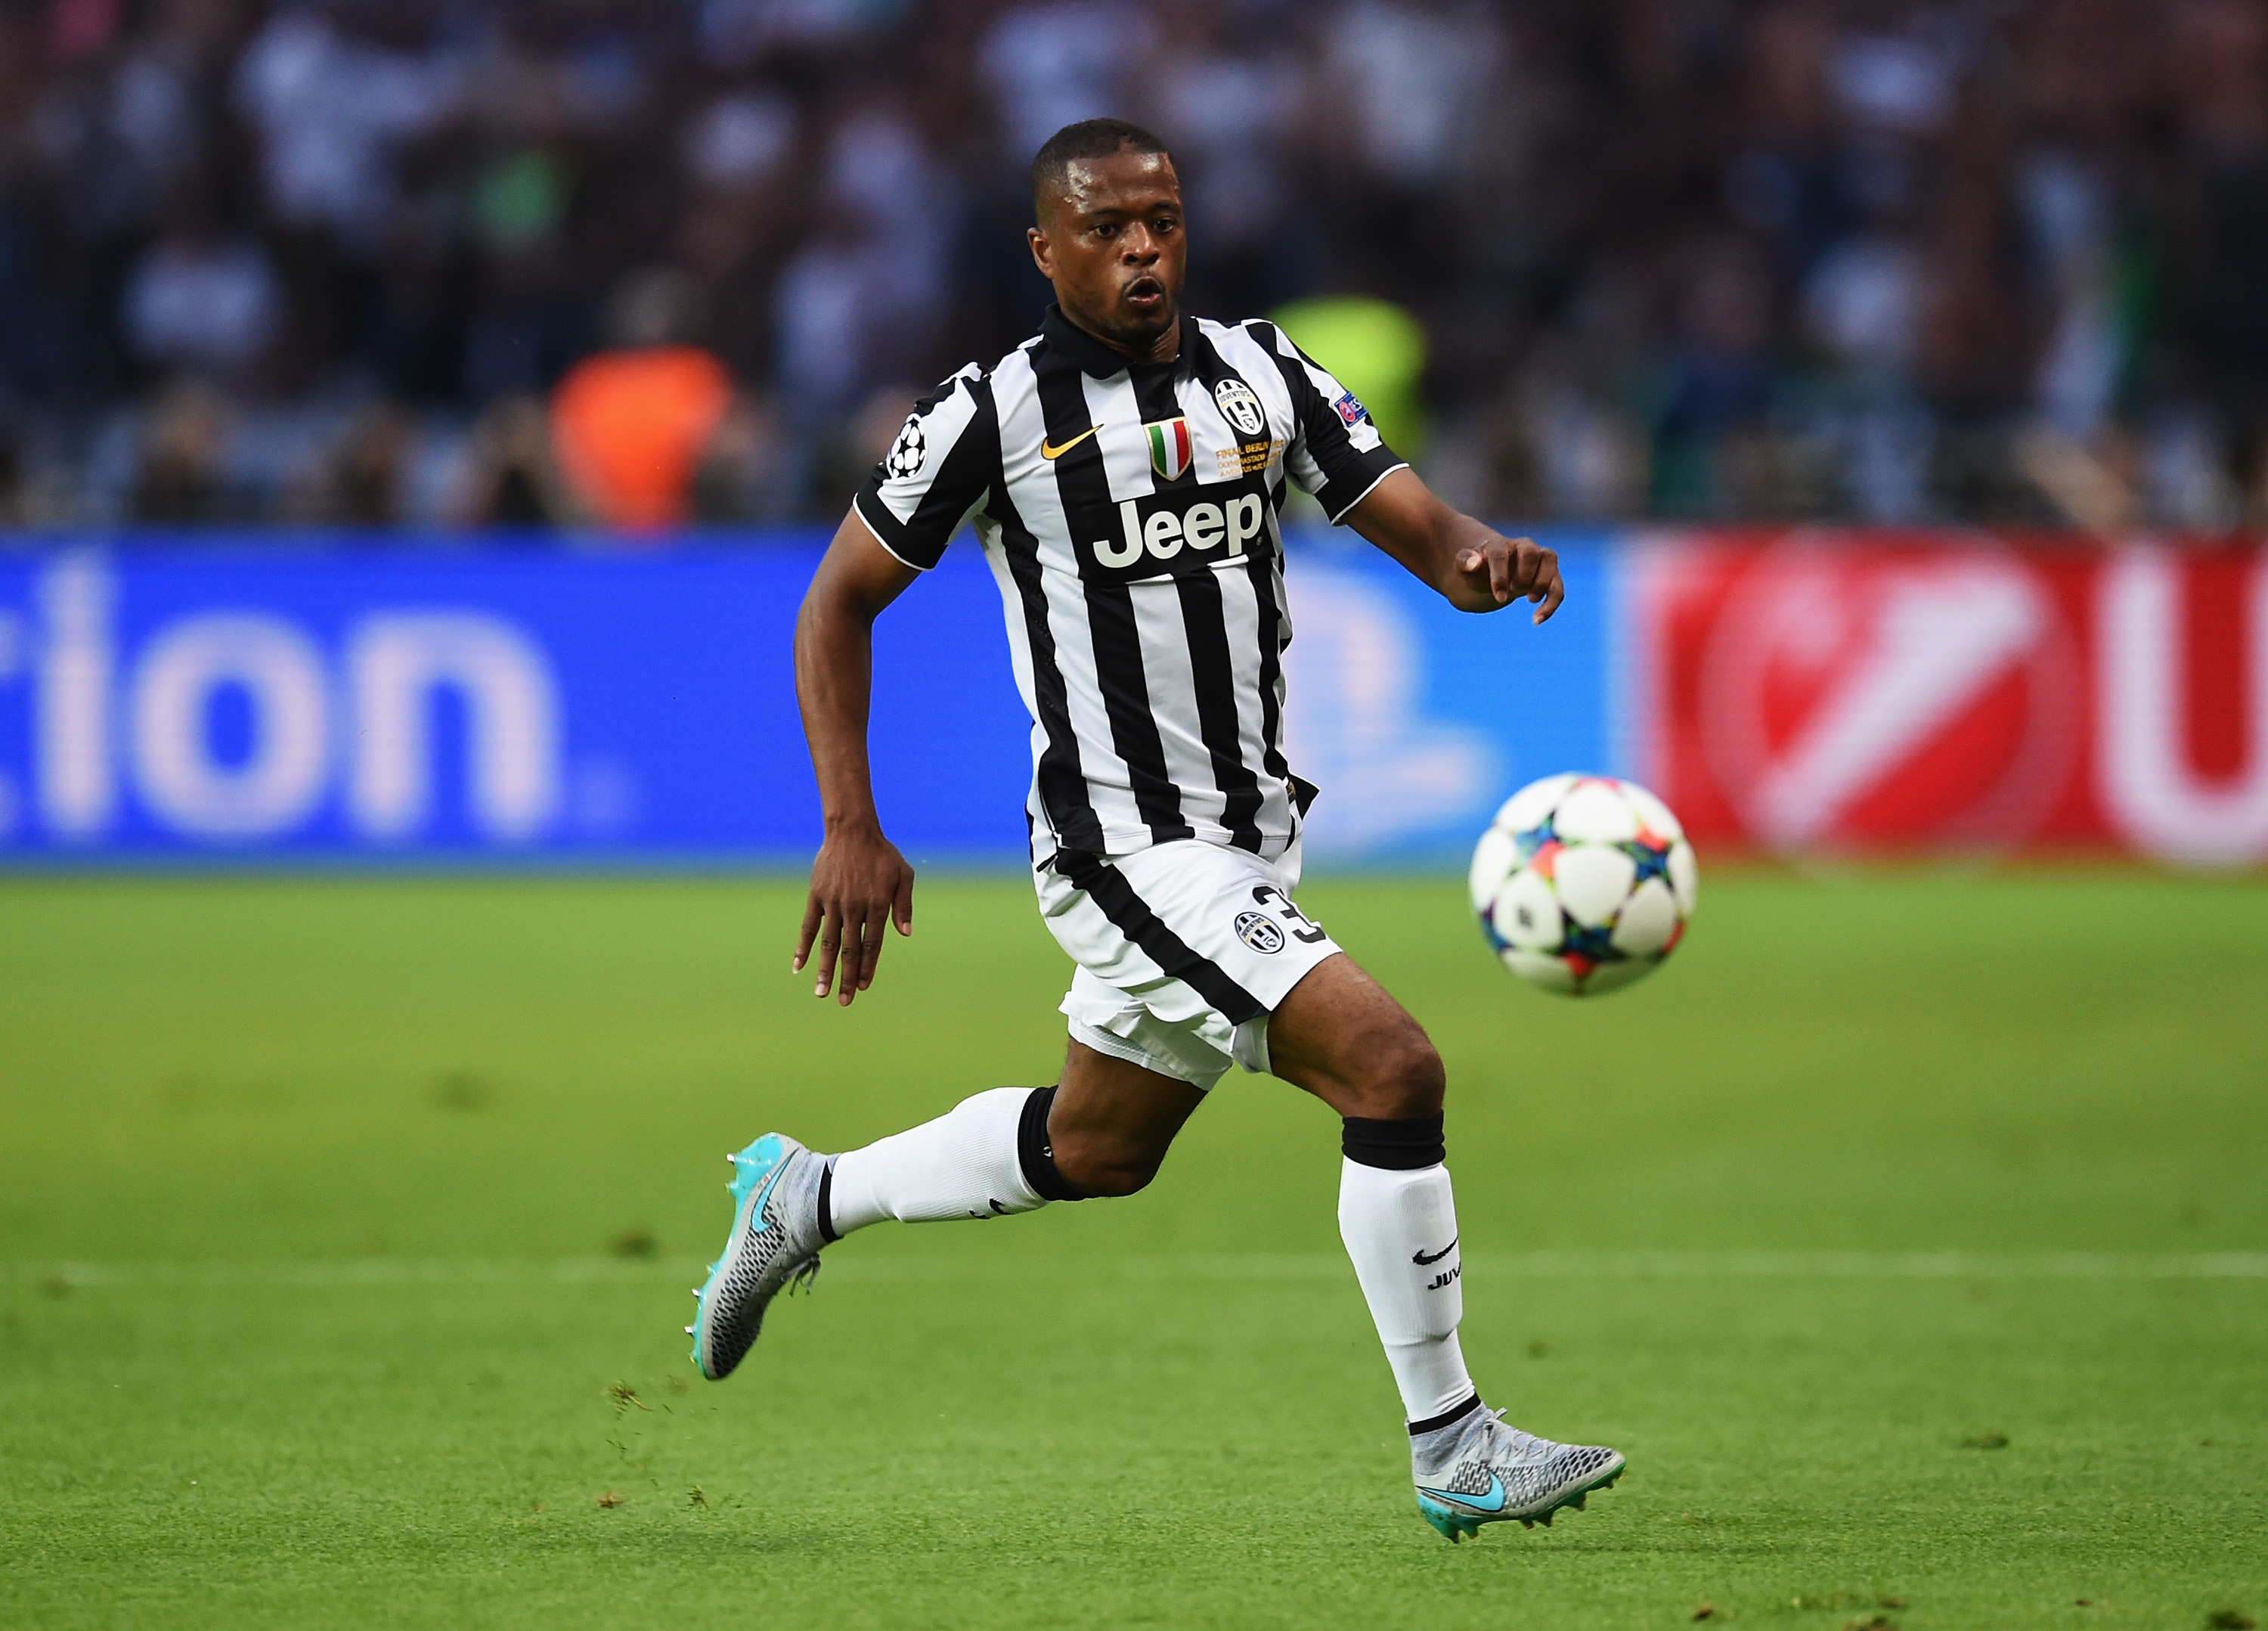 Patrice Evra, once again, running the flank in a Champions League final